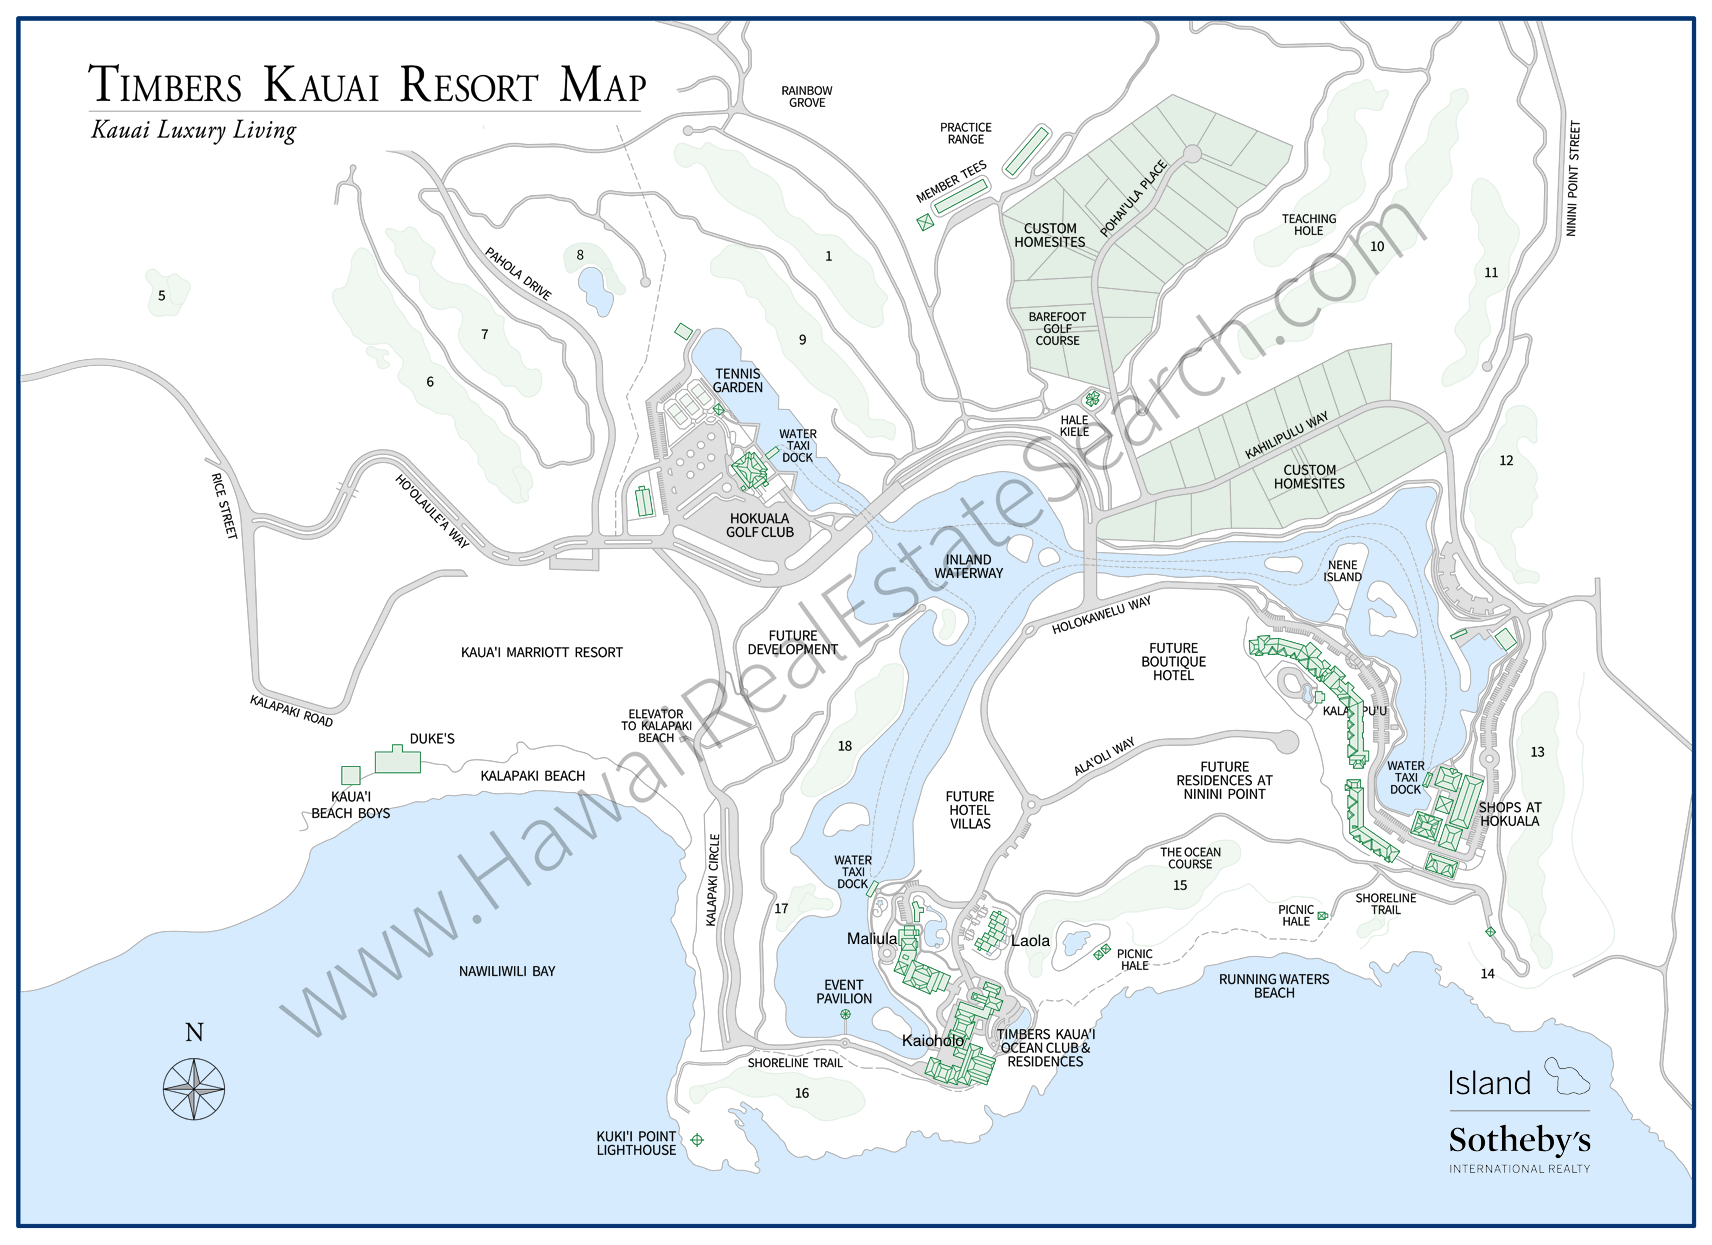 TK Resort Map 2018